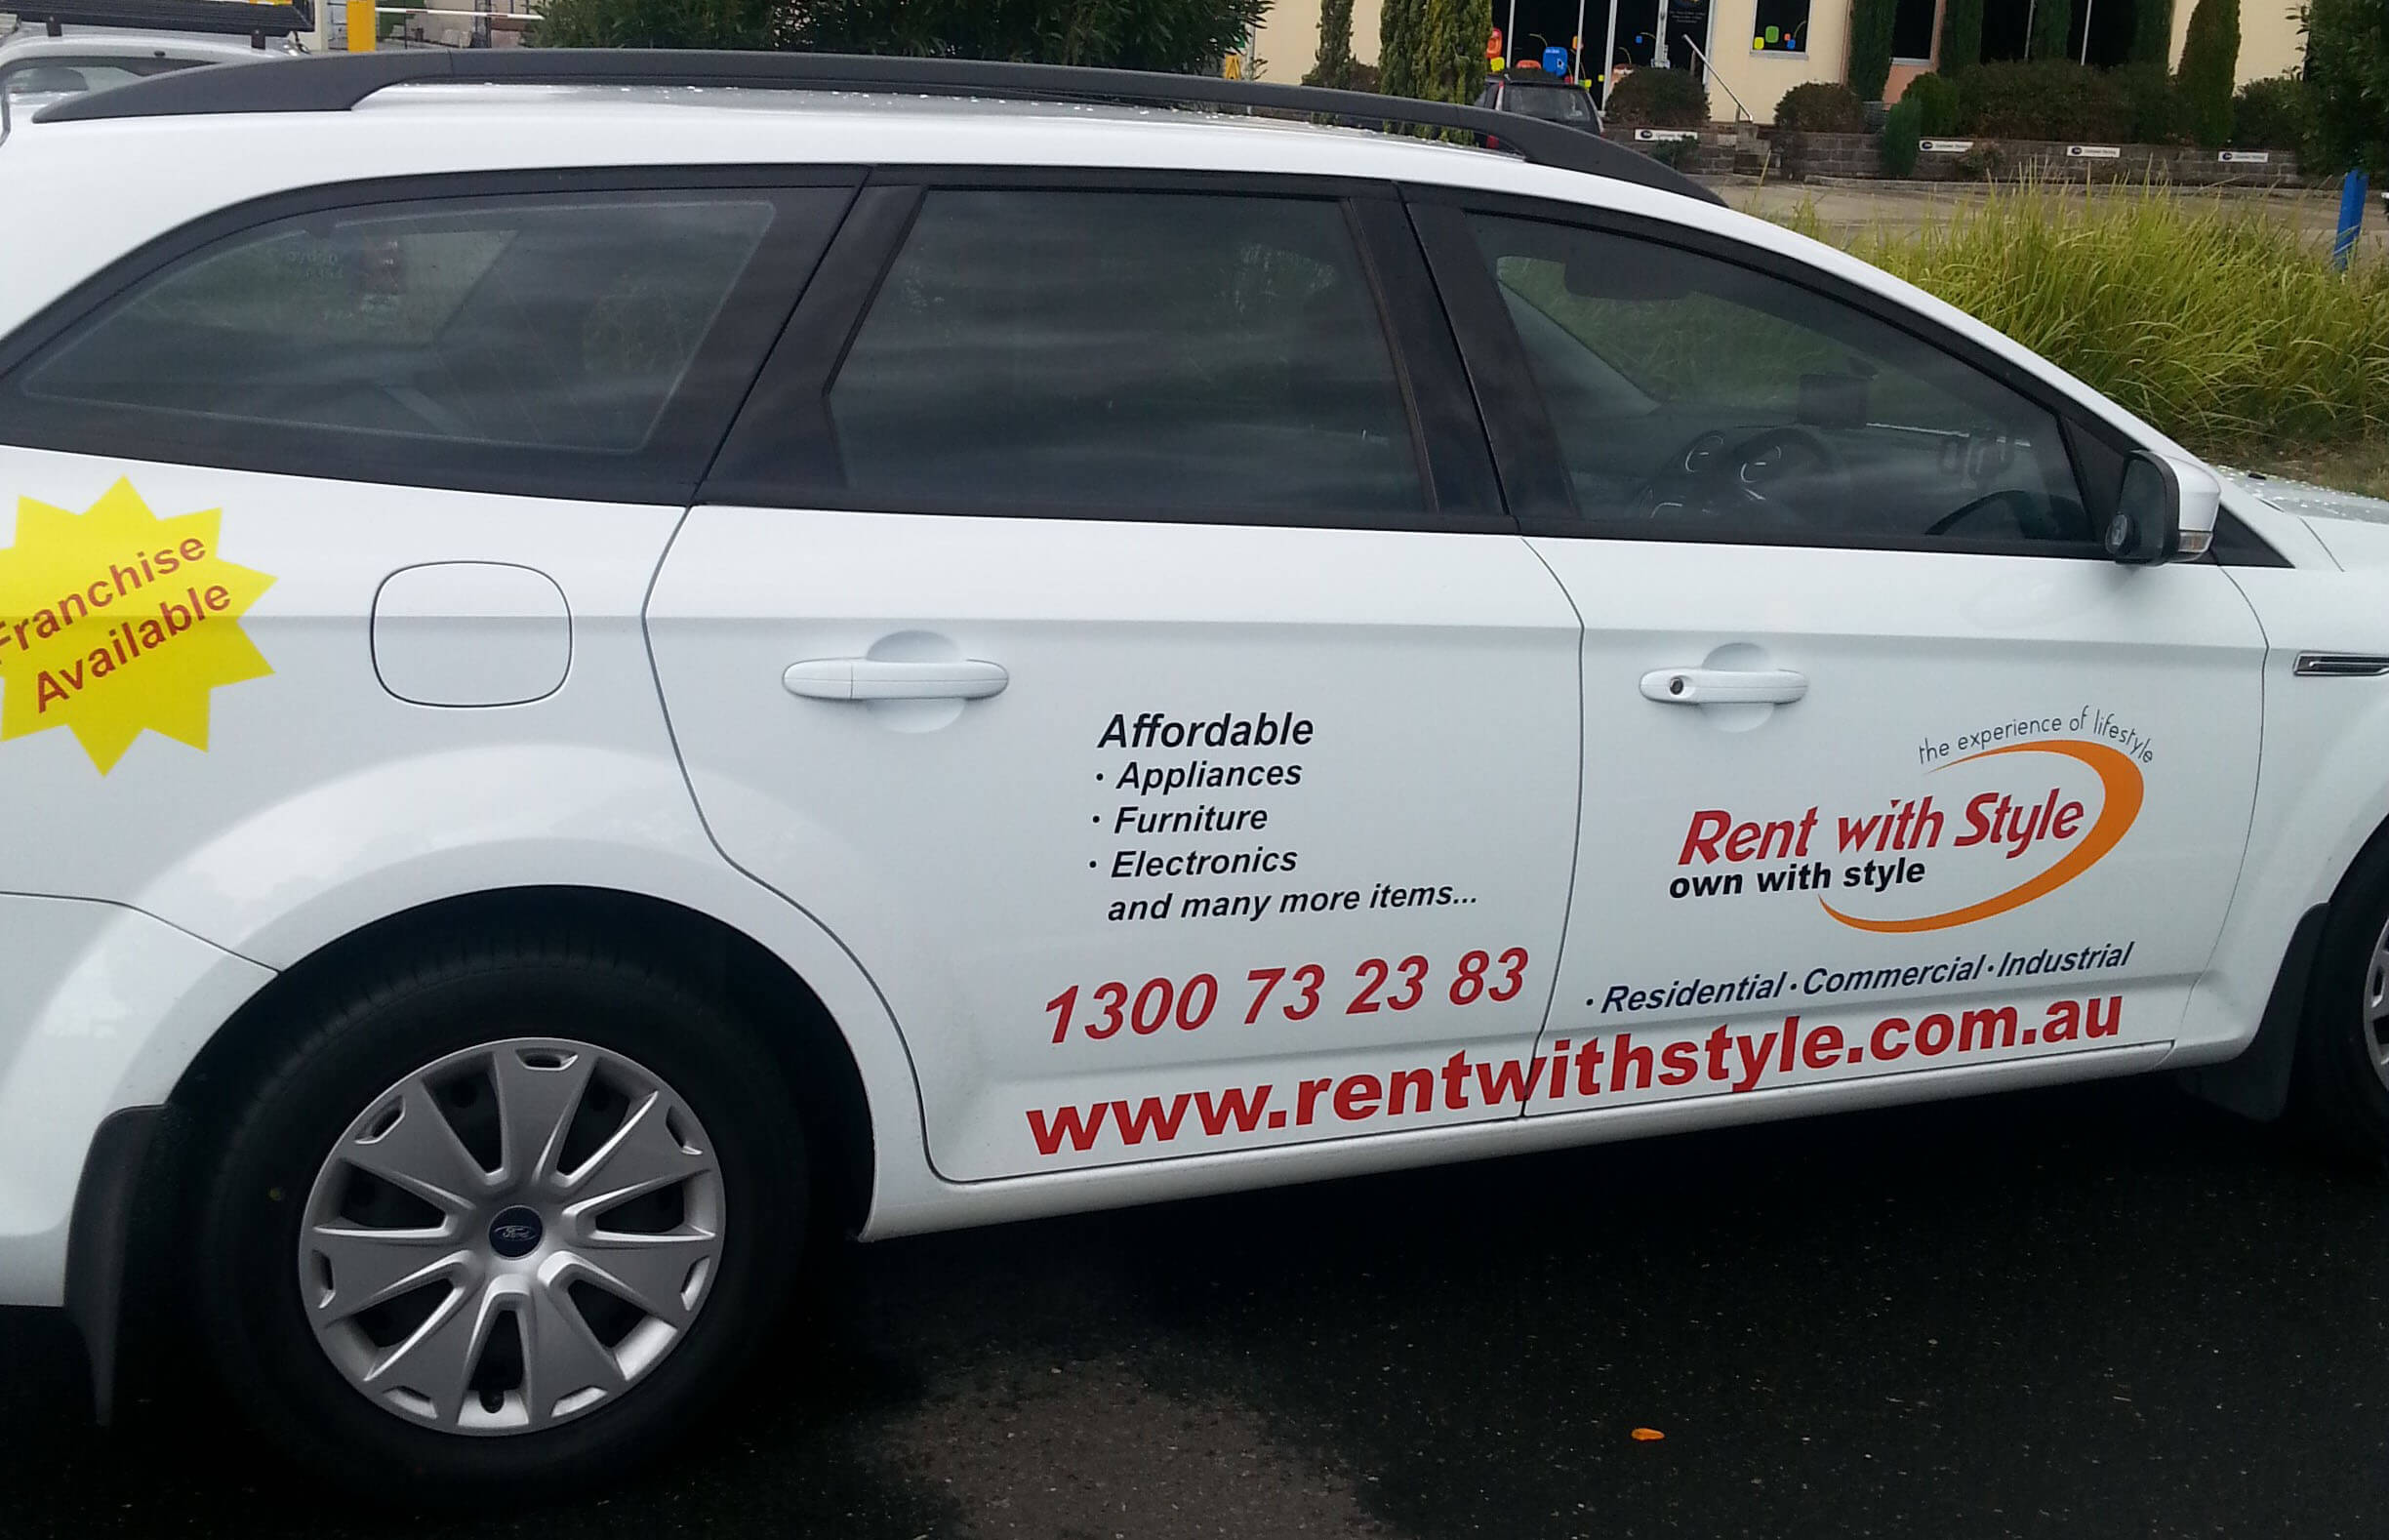 Car image with rent with style logo